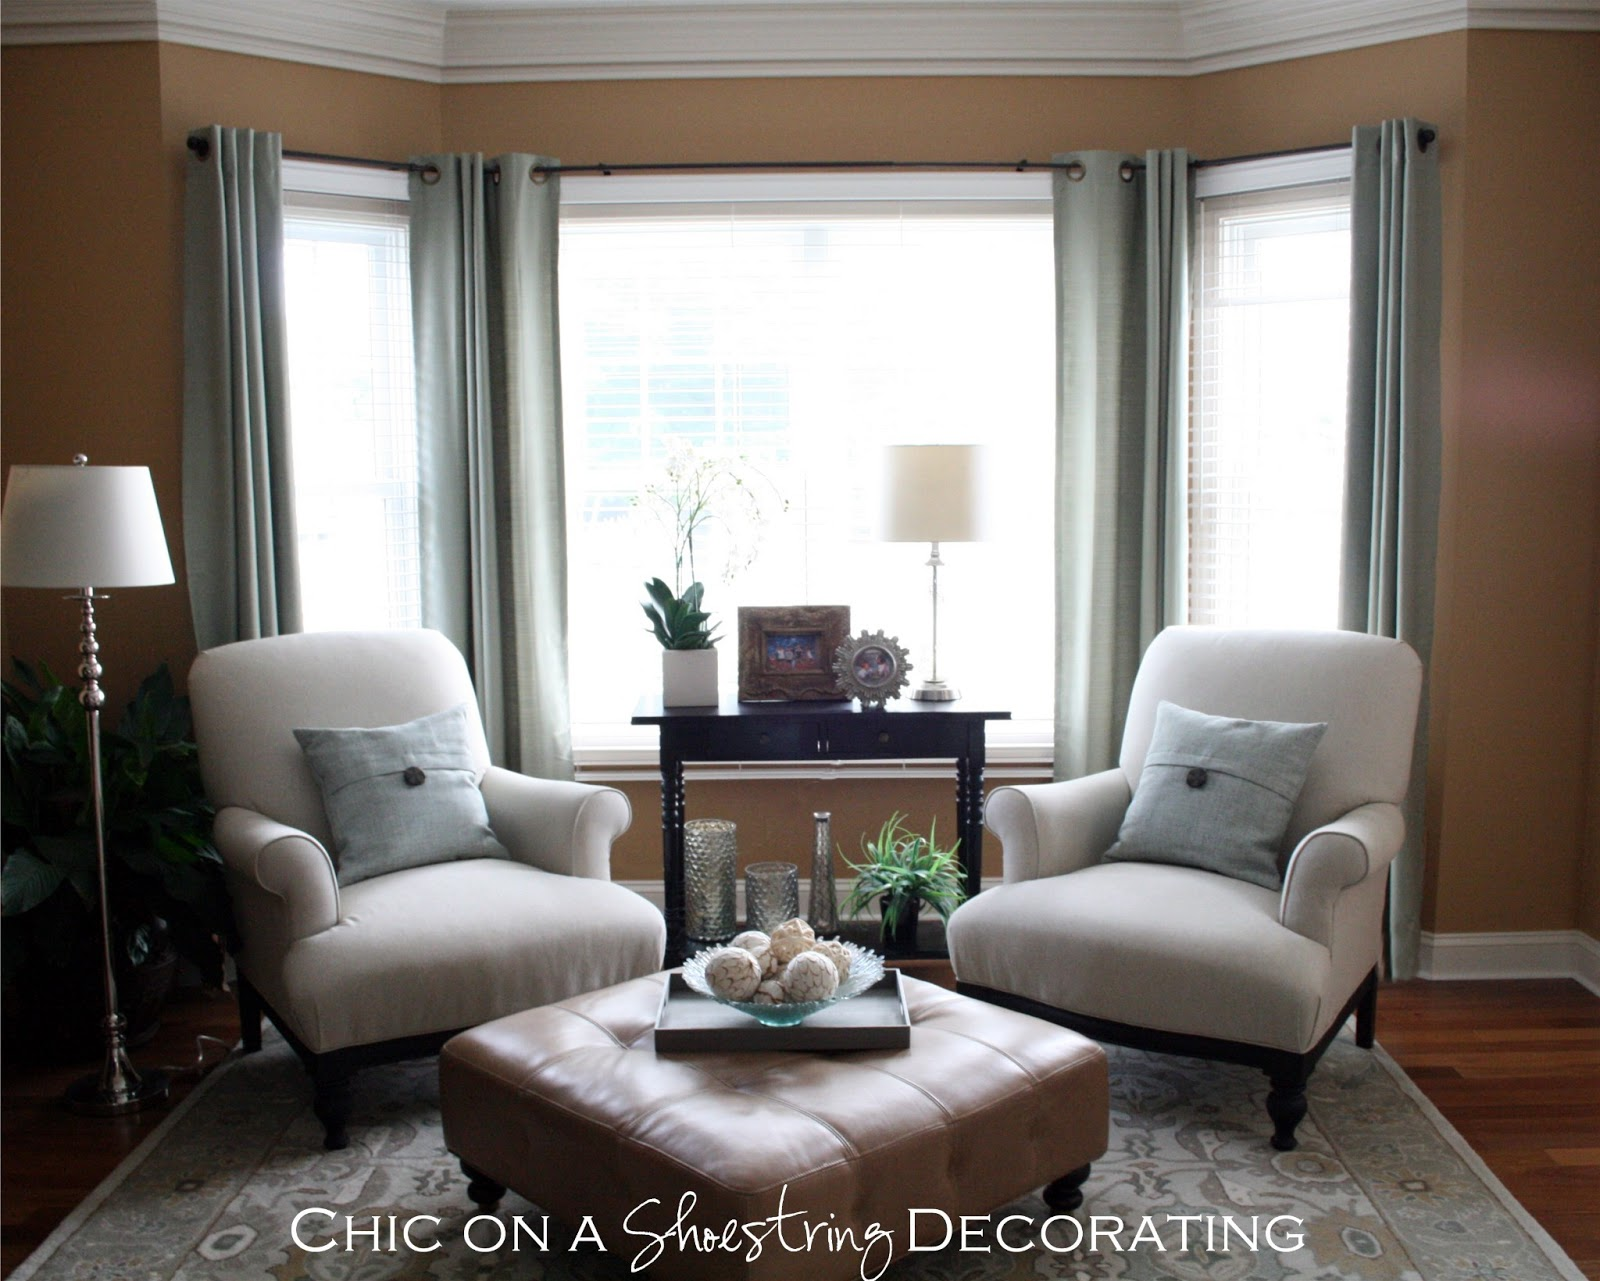 Chic on a shoestring decorating grand piano living room for Front room decorating designs